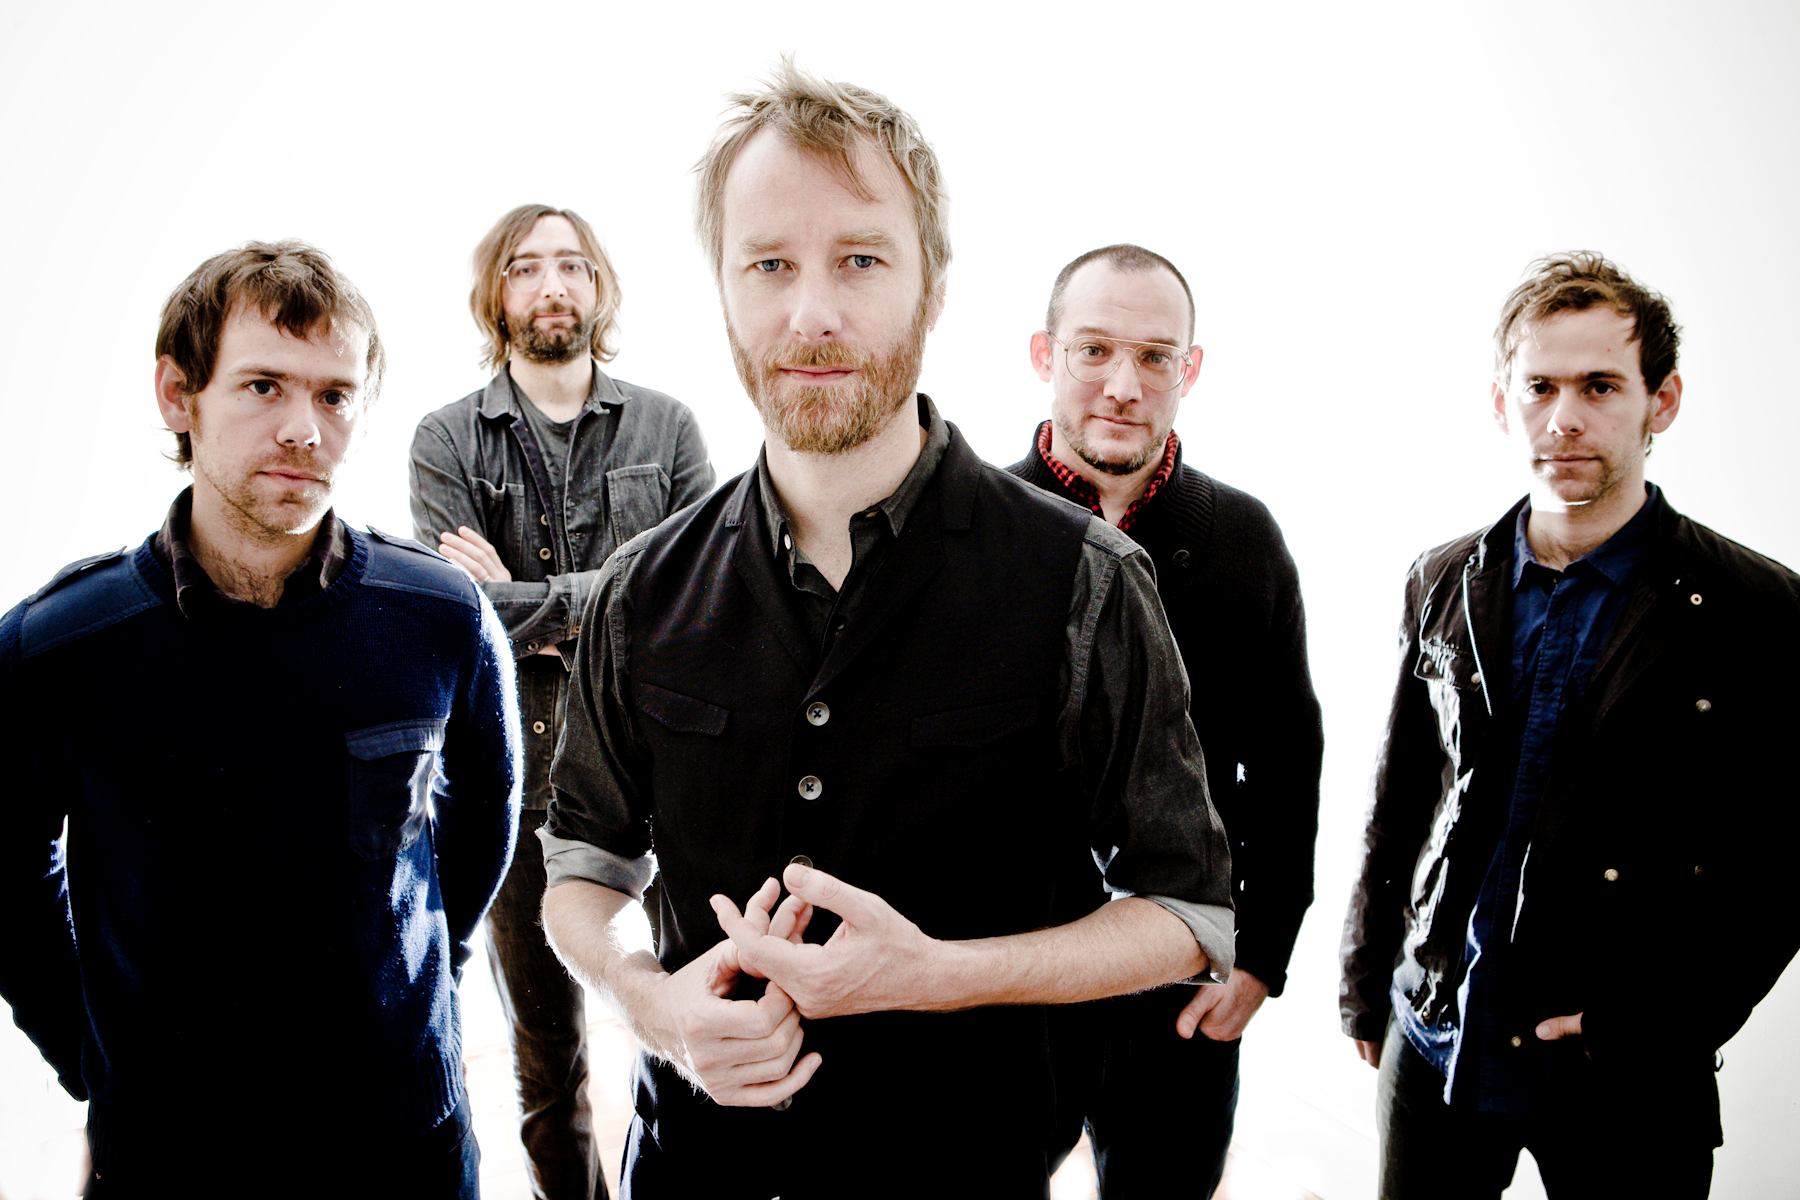 The national wallpaper